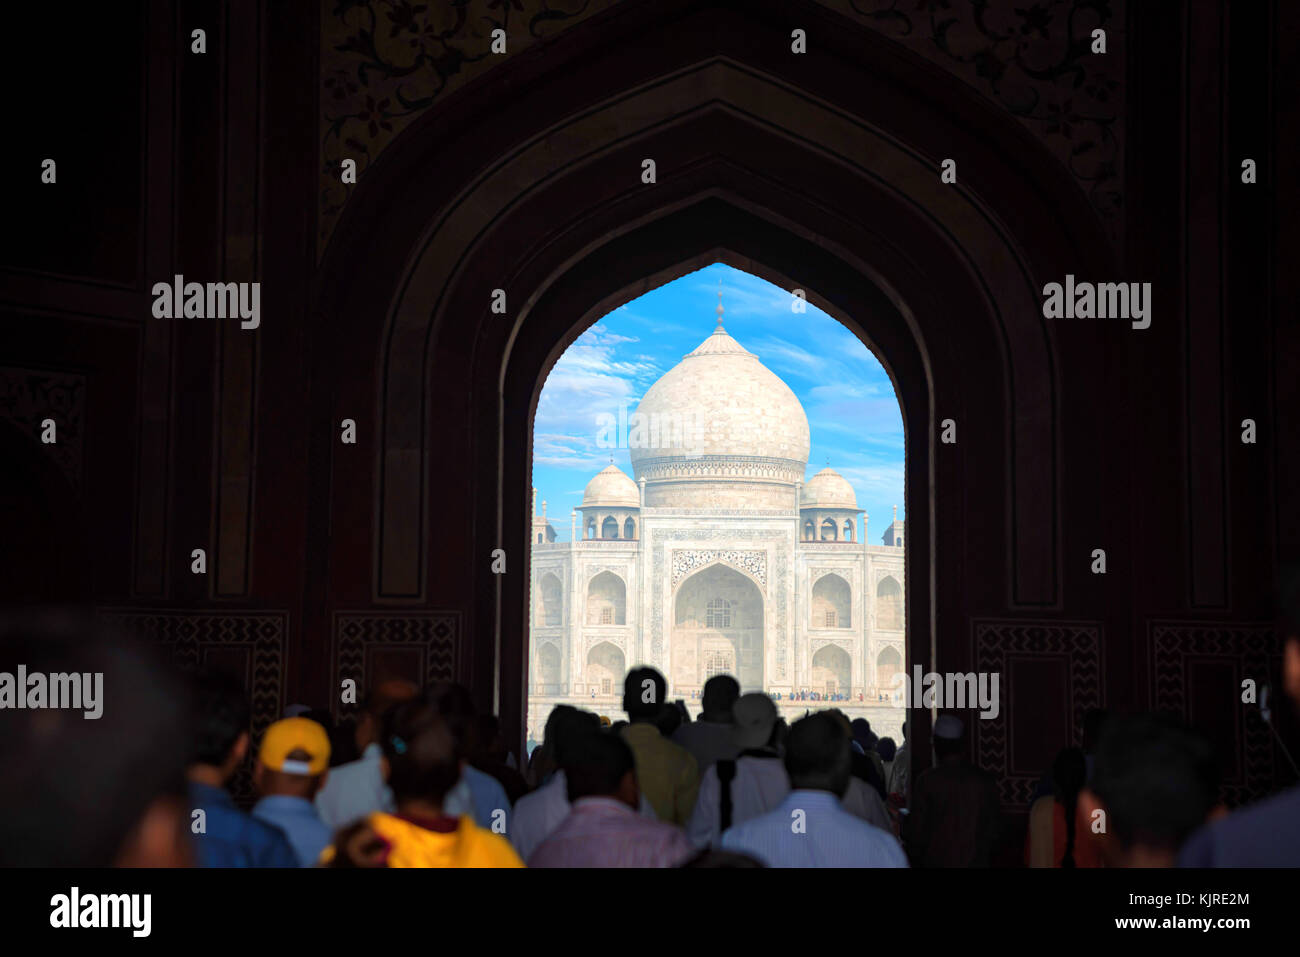 Taj Mahal panoramico vista di gate in Agra, India. Immagini Stock